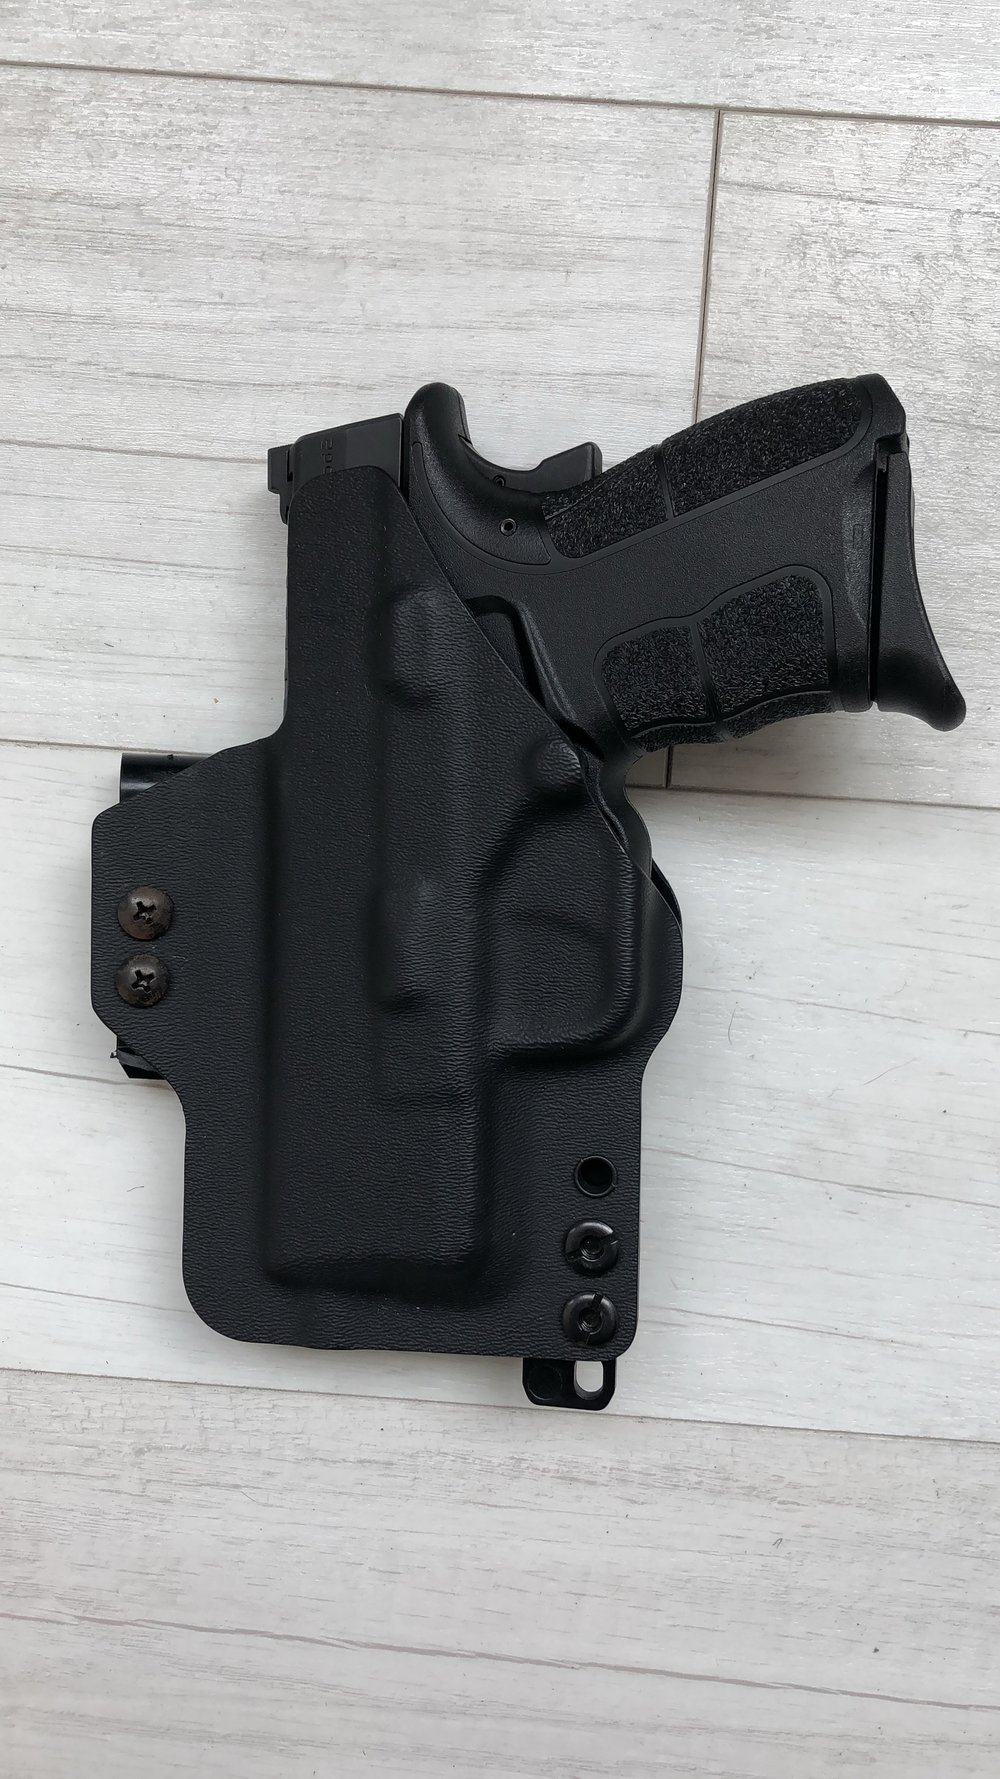 Torsion IWB Kydex Holster, Bravo Concealment, $53.99